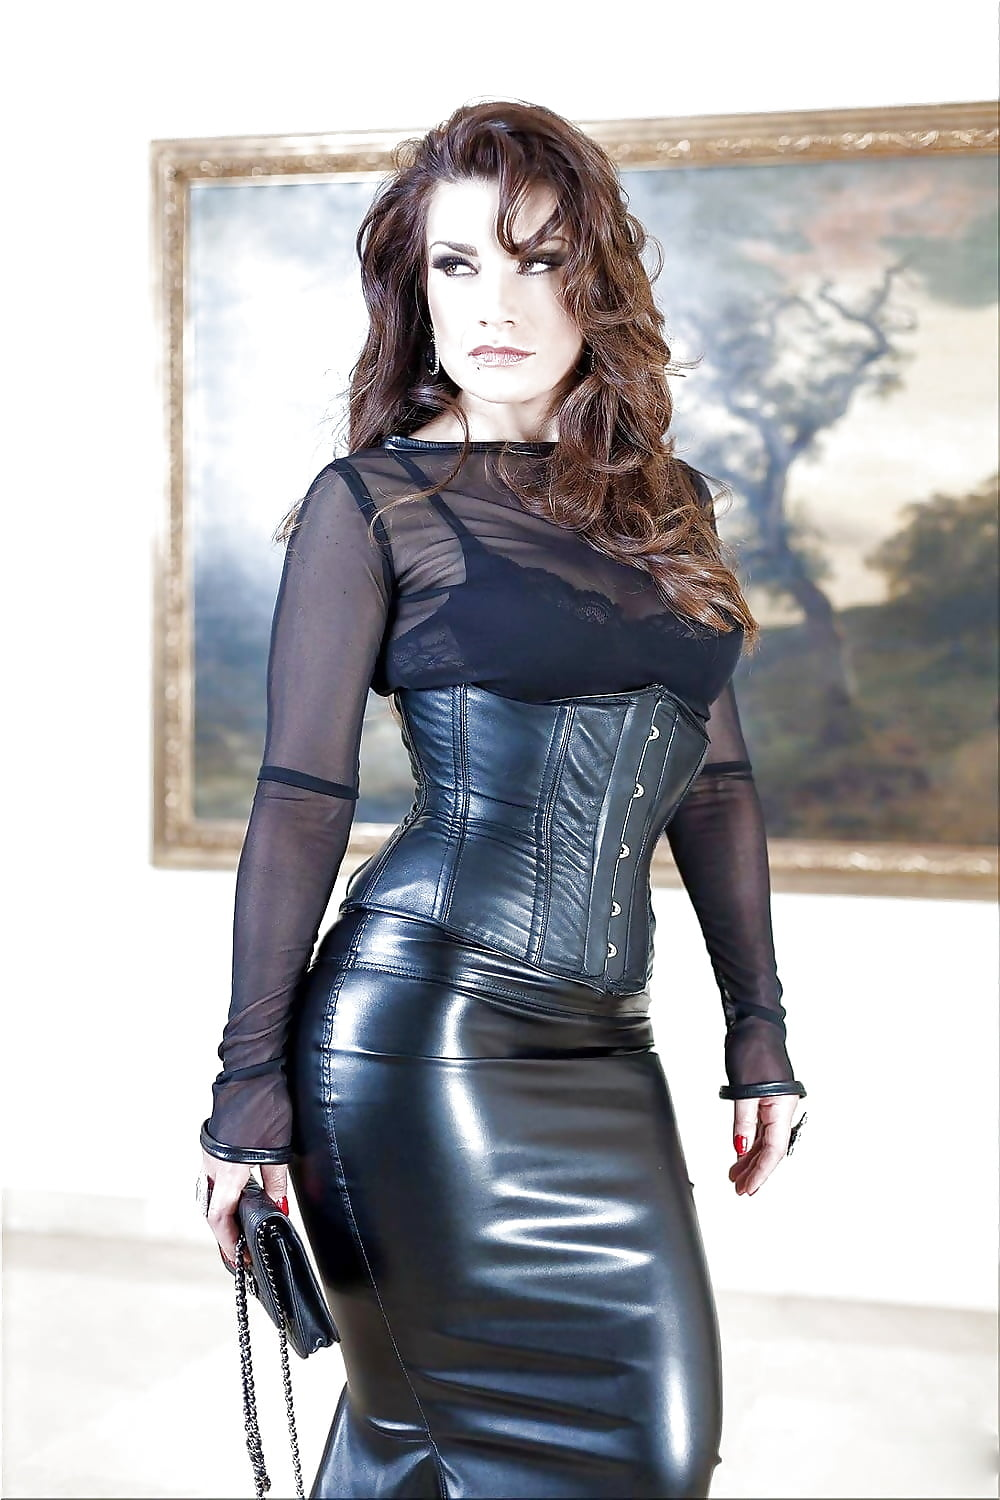 From leather skirt gallery movies milf girl arwen